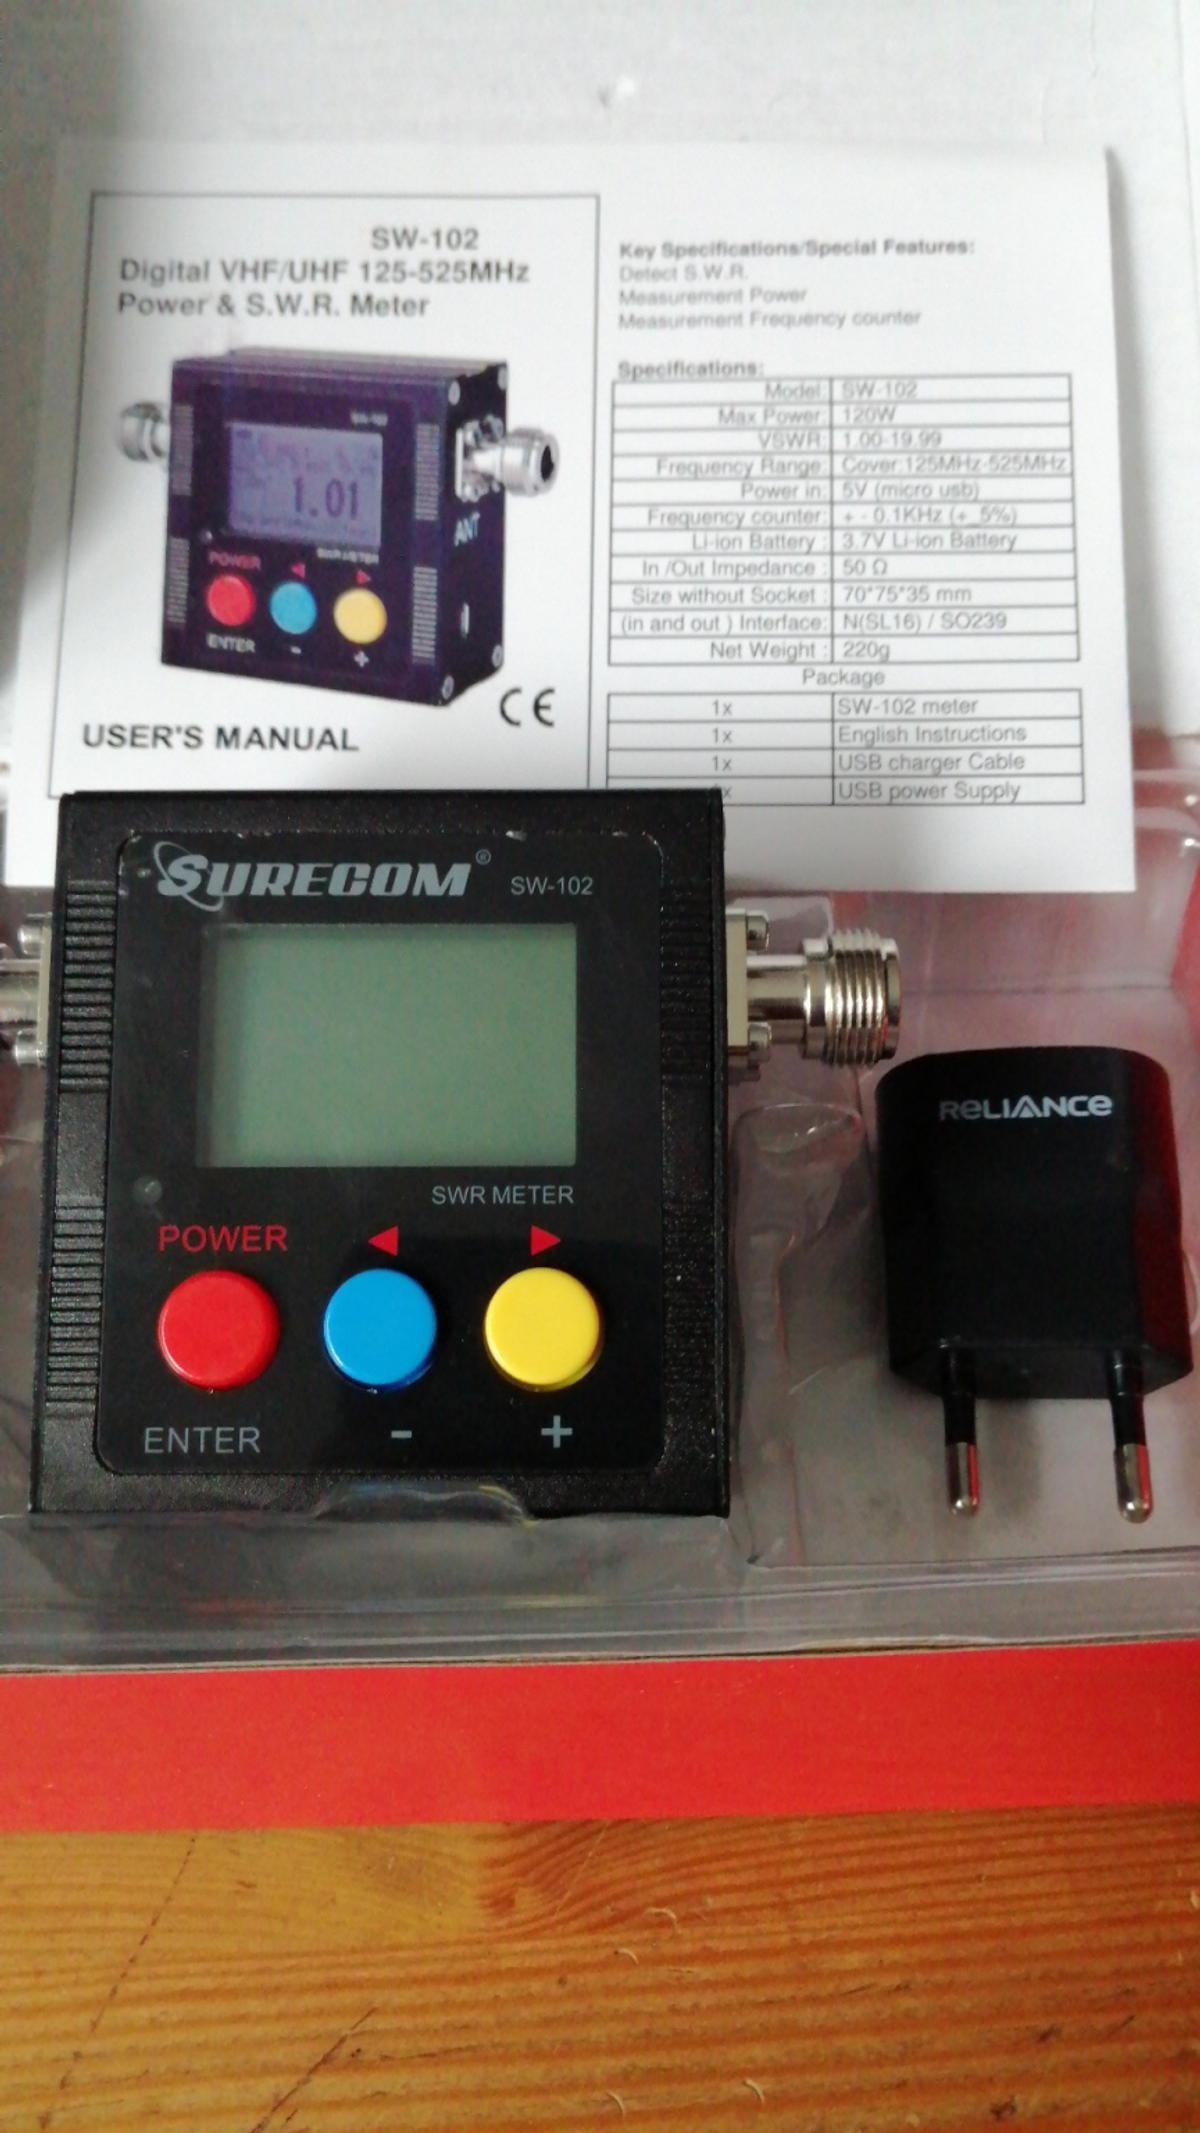 power swr Meter digital